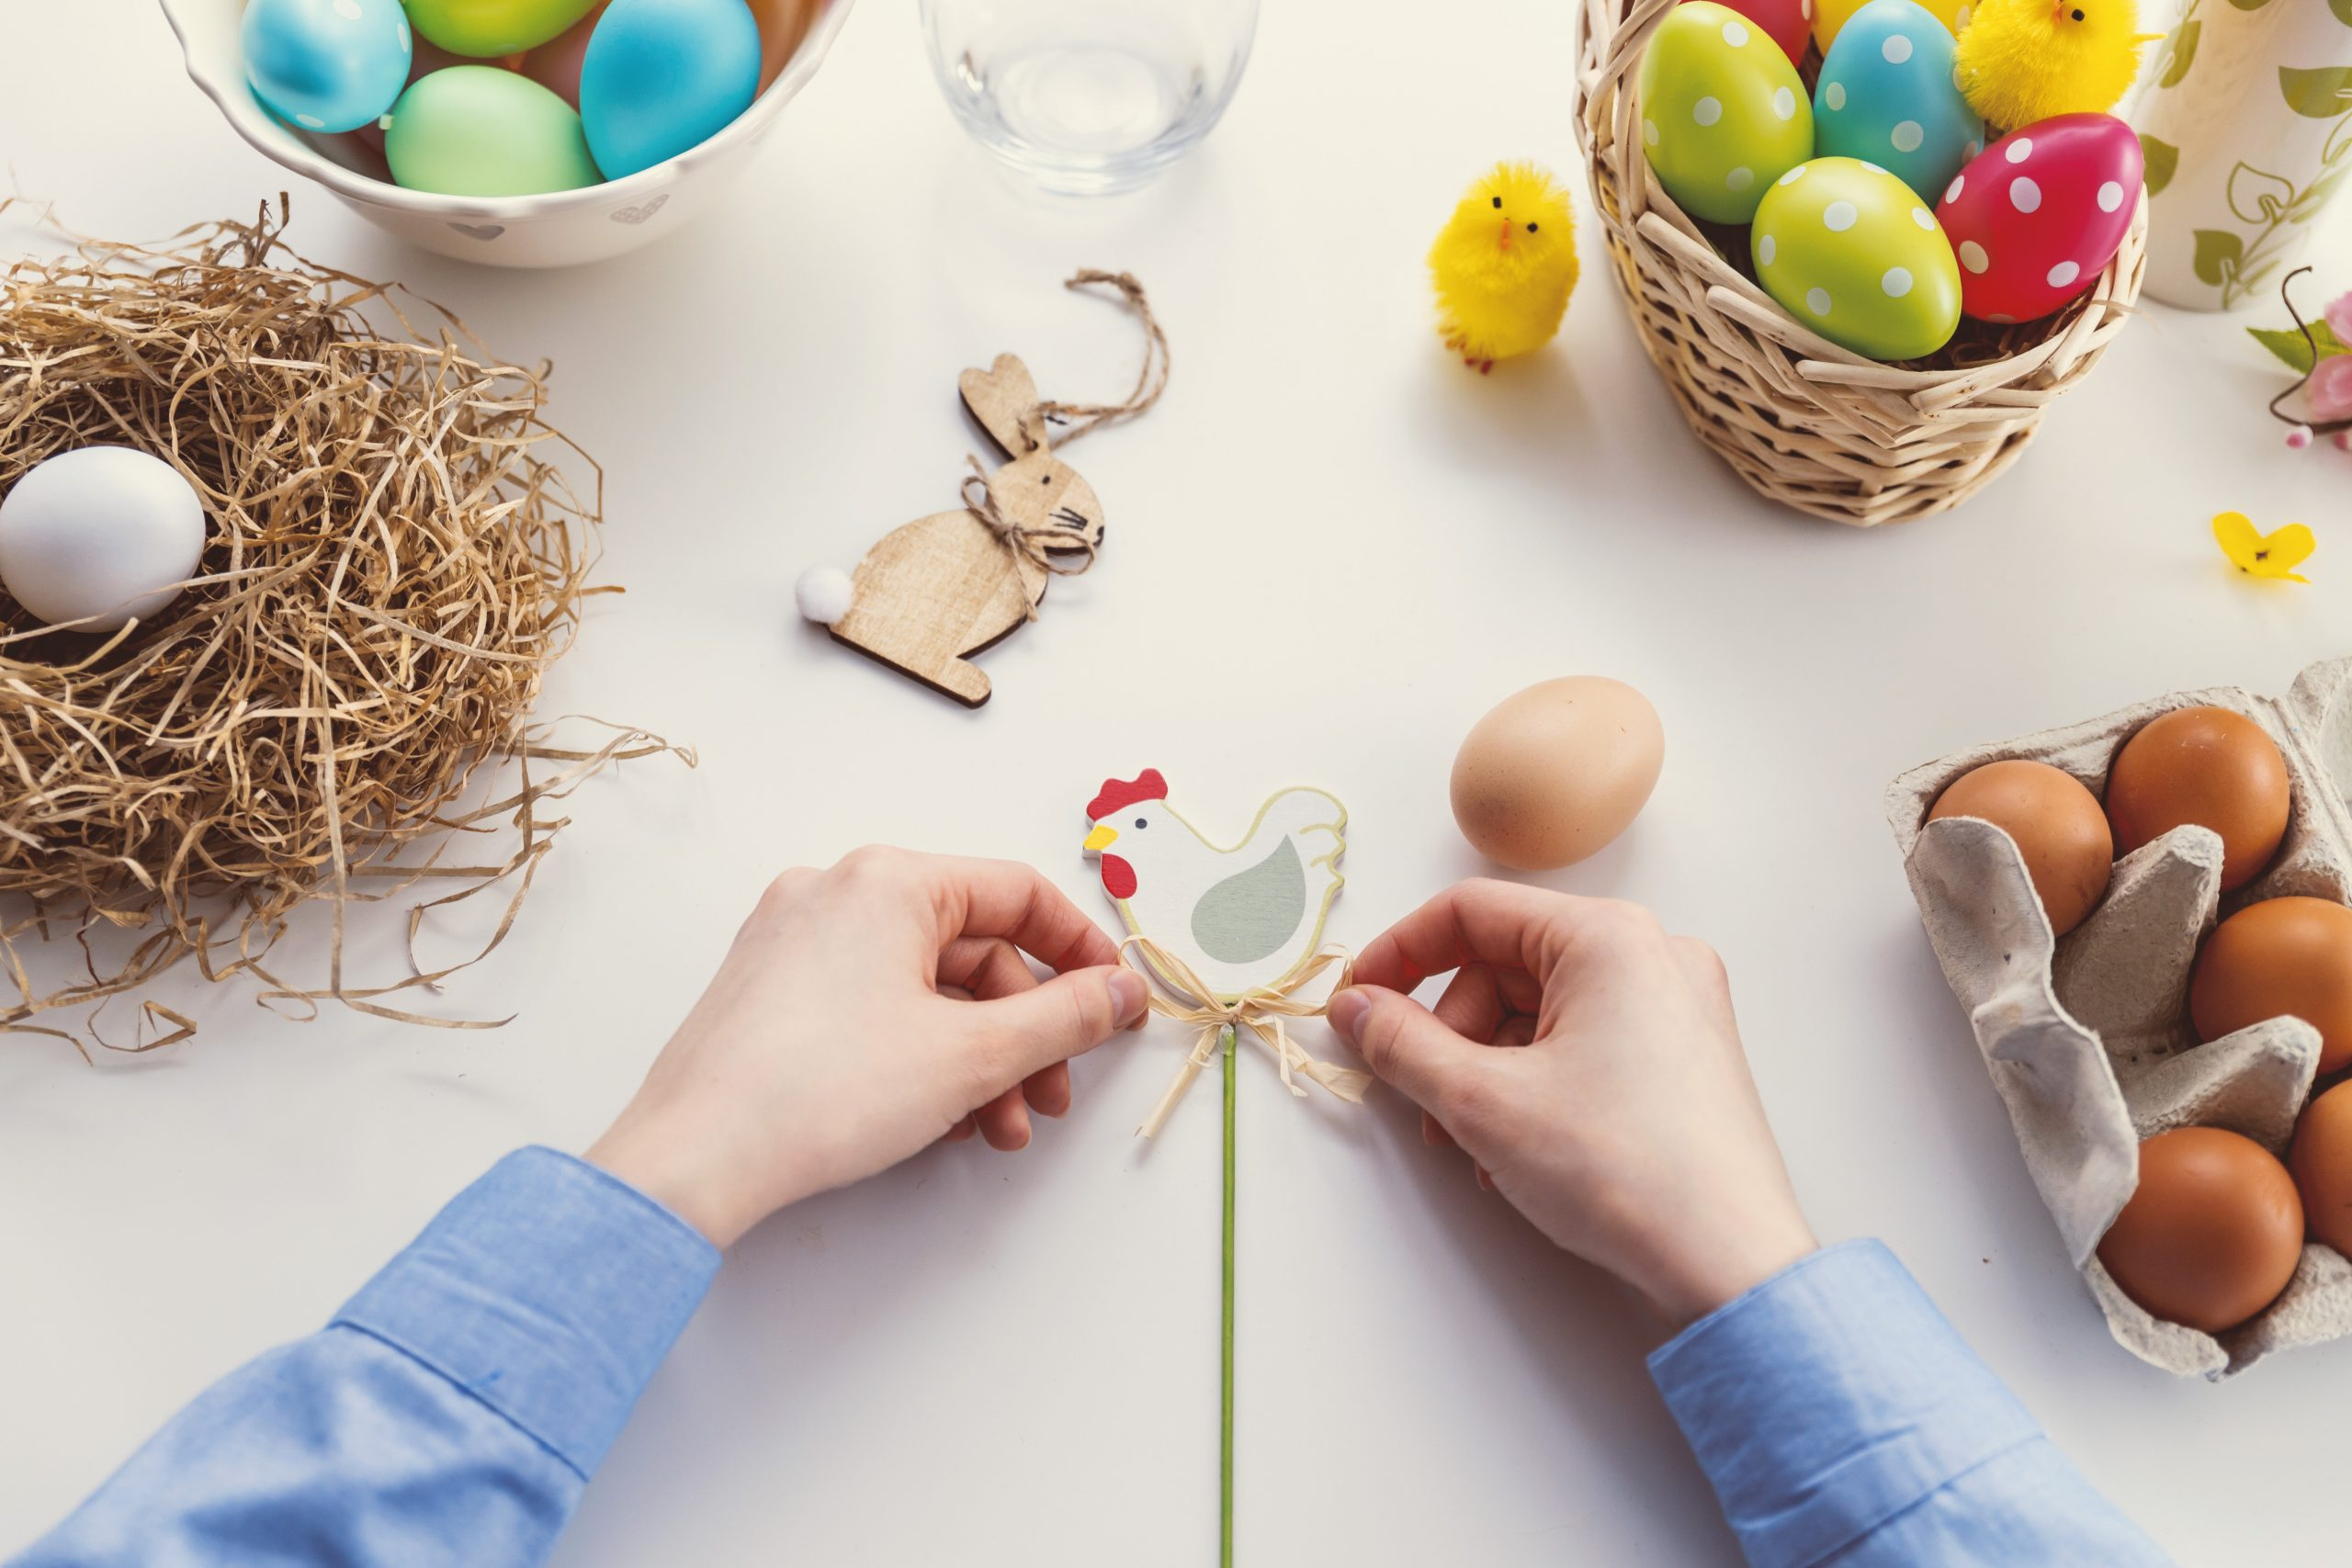 Let's discover some Easter traditions of Eastern Europe and Russia